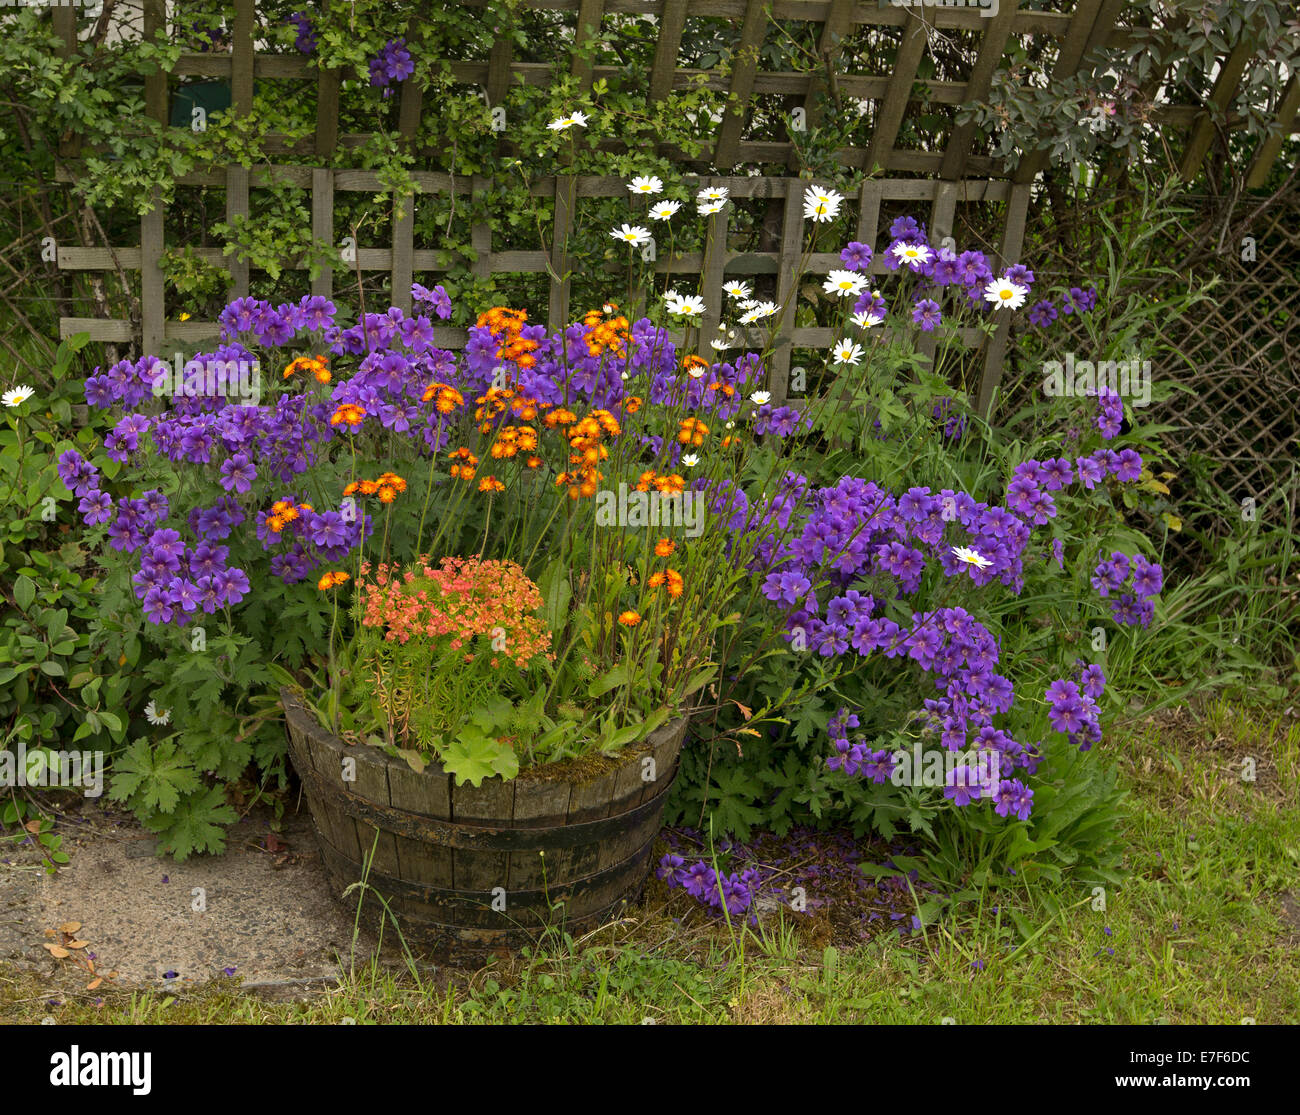 Masses of bright purple orange and white flowers of perennial masses of bright purple orange and white flowers of perennial plants british wildflowers flowering in old wine cask tub in scotland mightylinksfo Choice Image